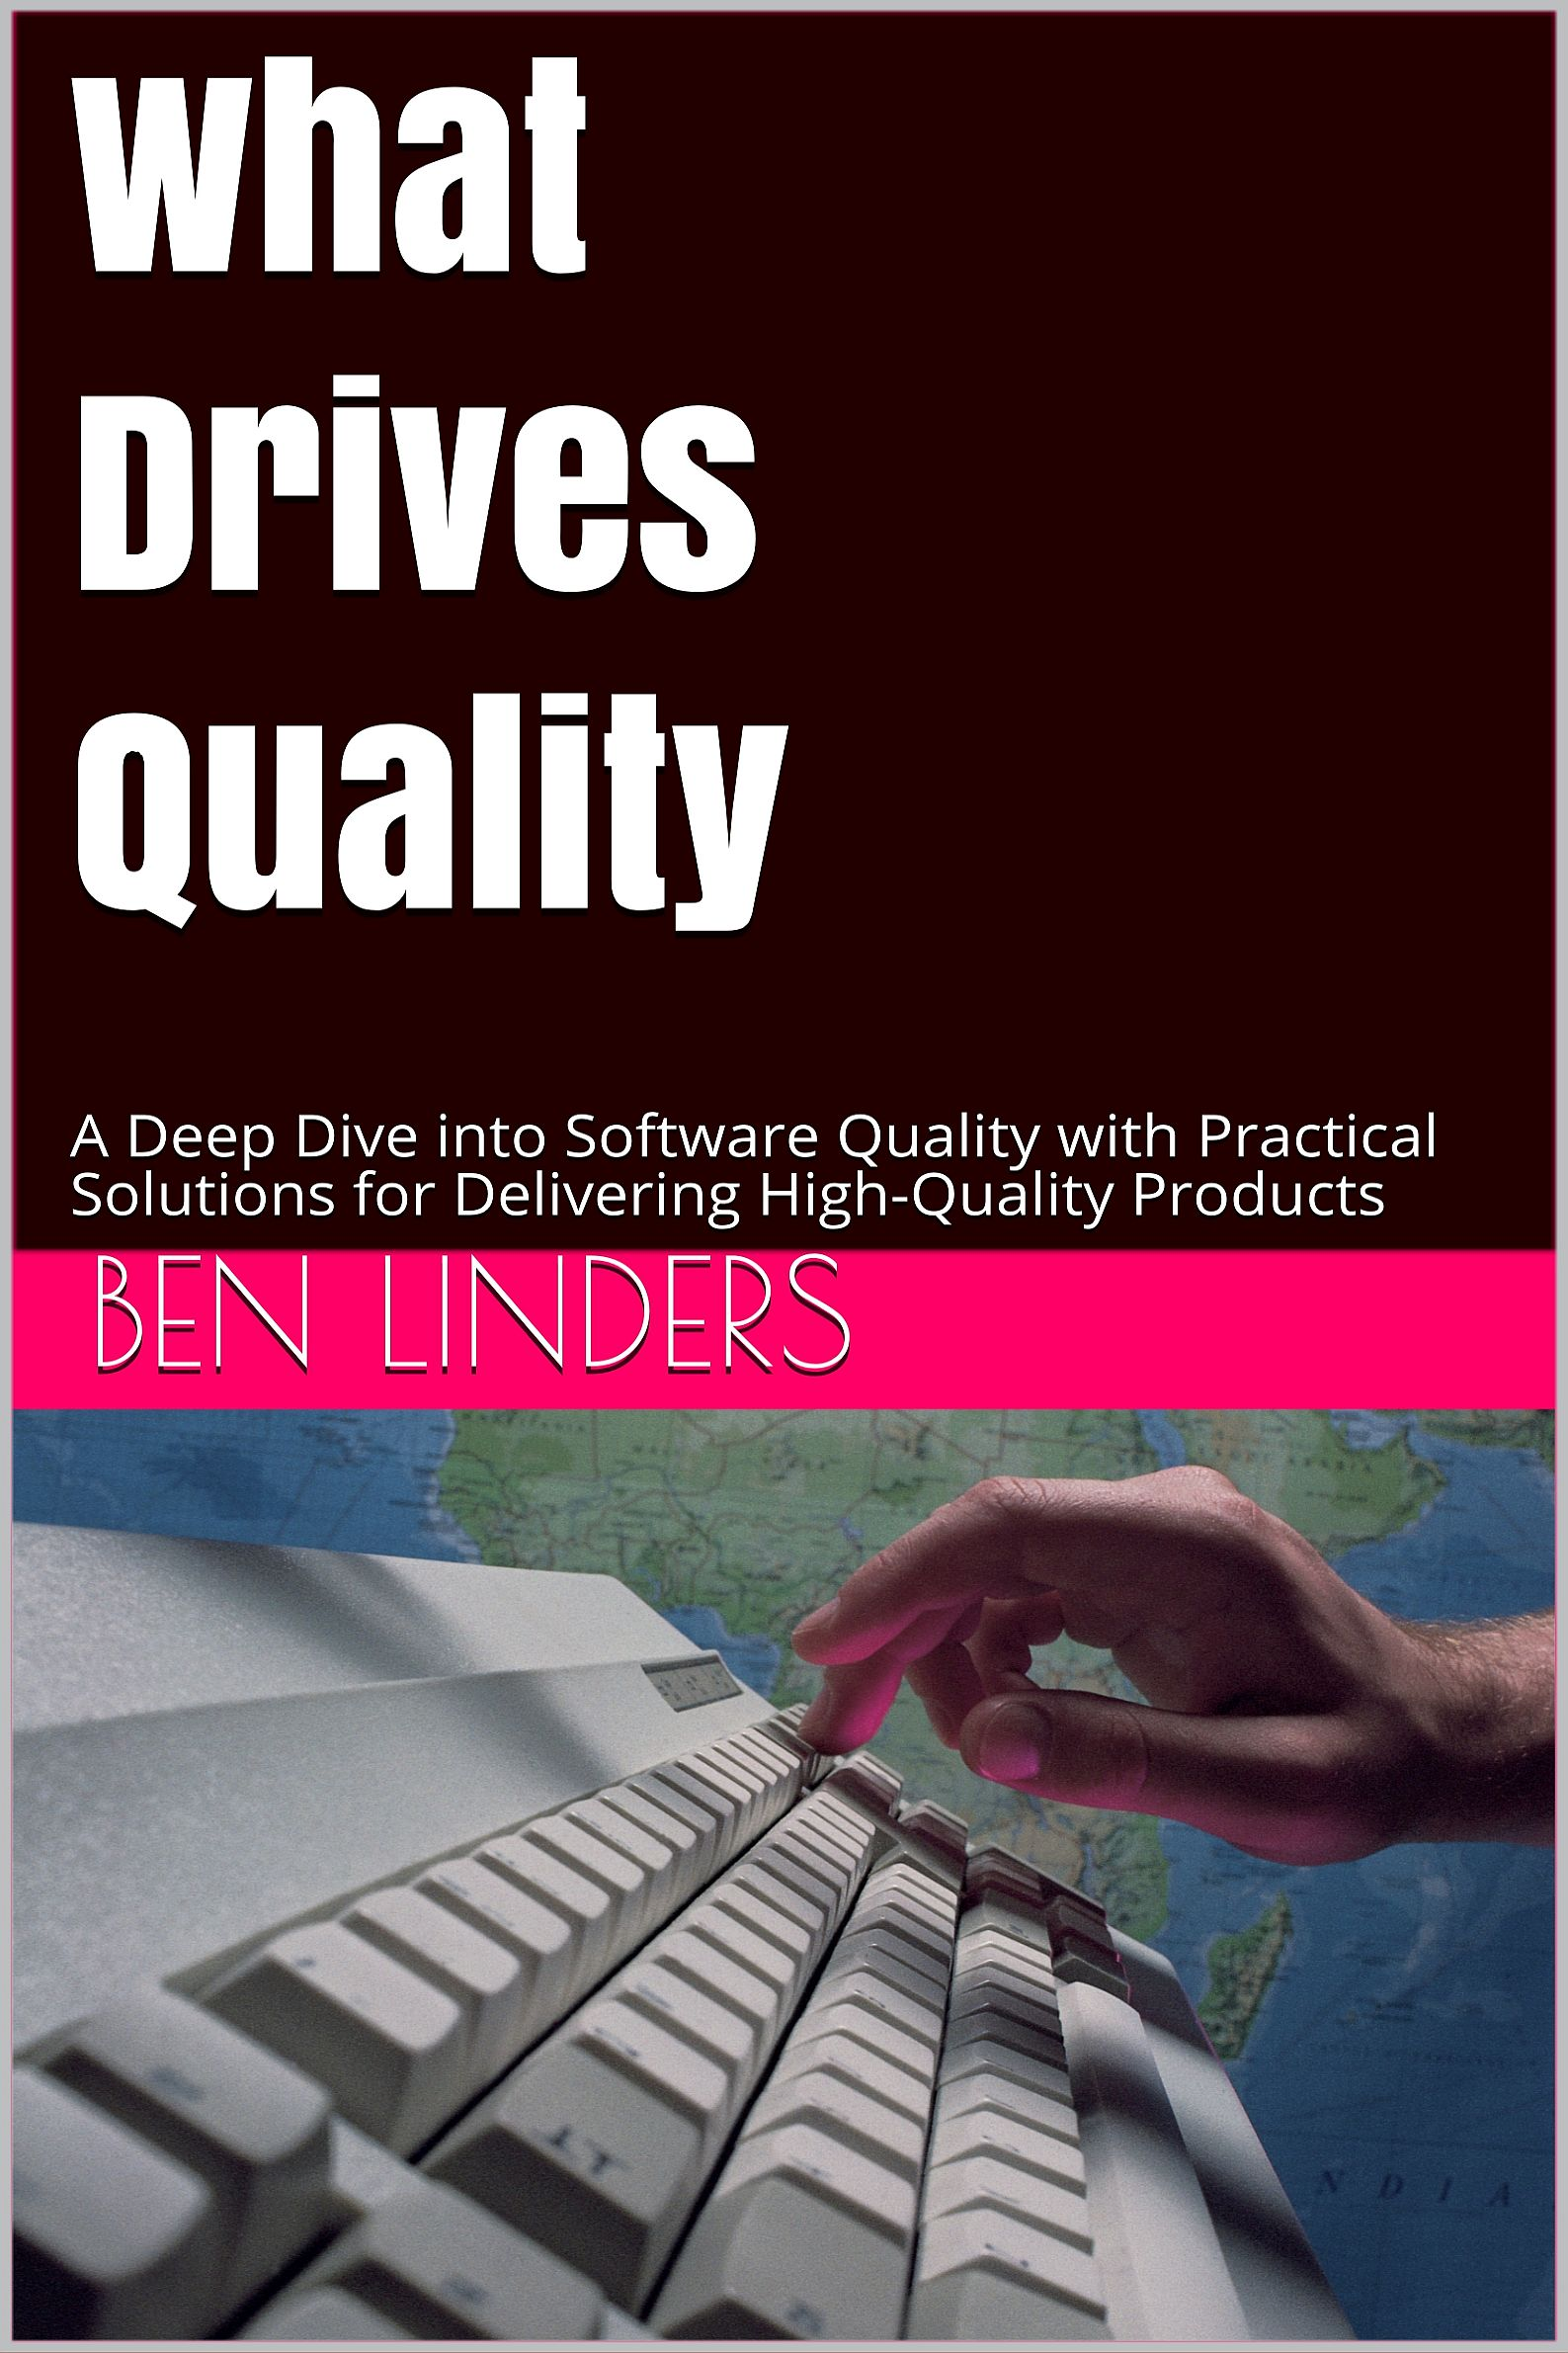 Book: What Drives Quality